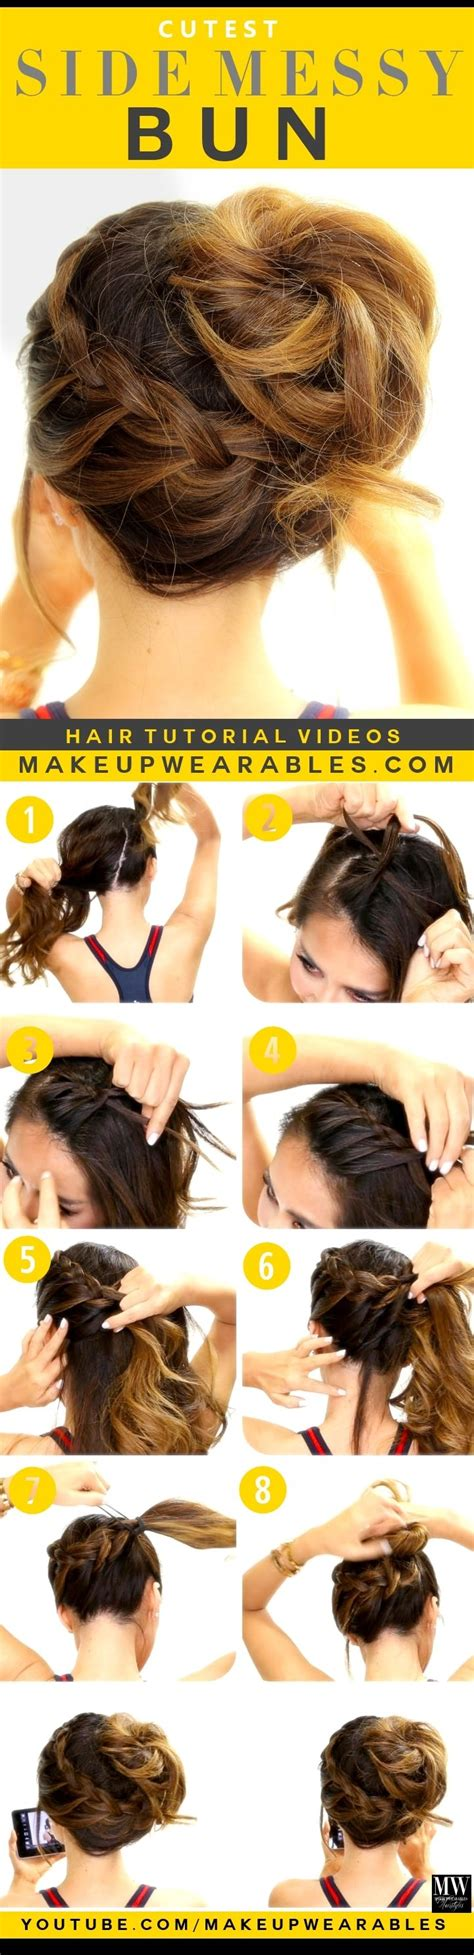 diy hairstyles side bun diy side messy bun pictures photos and images for